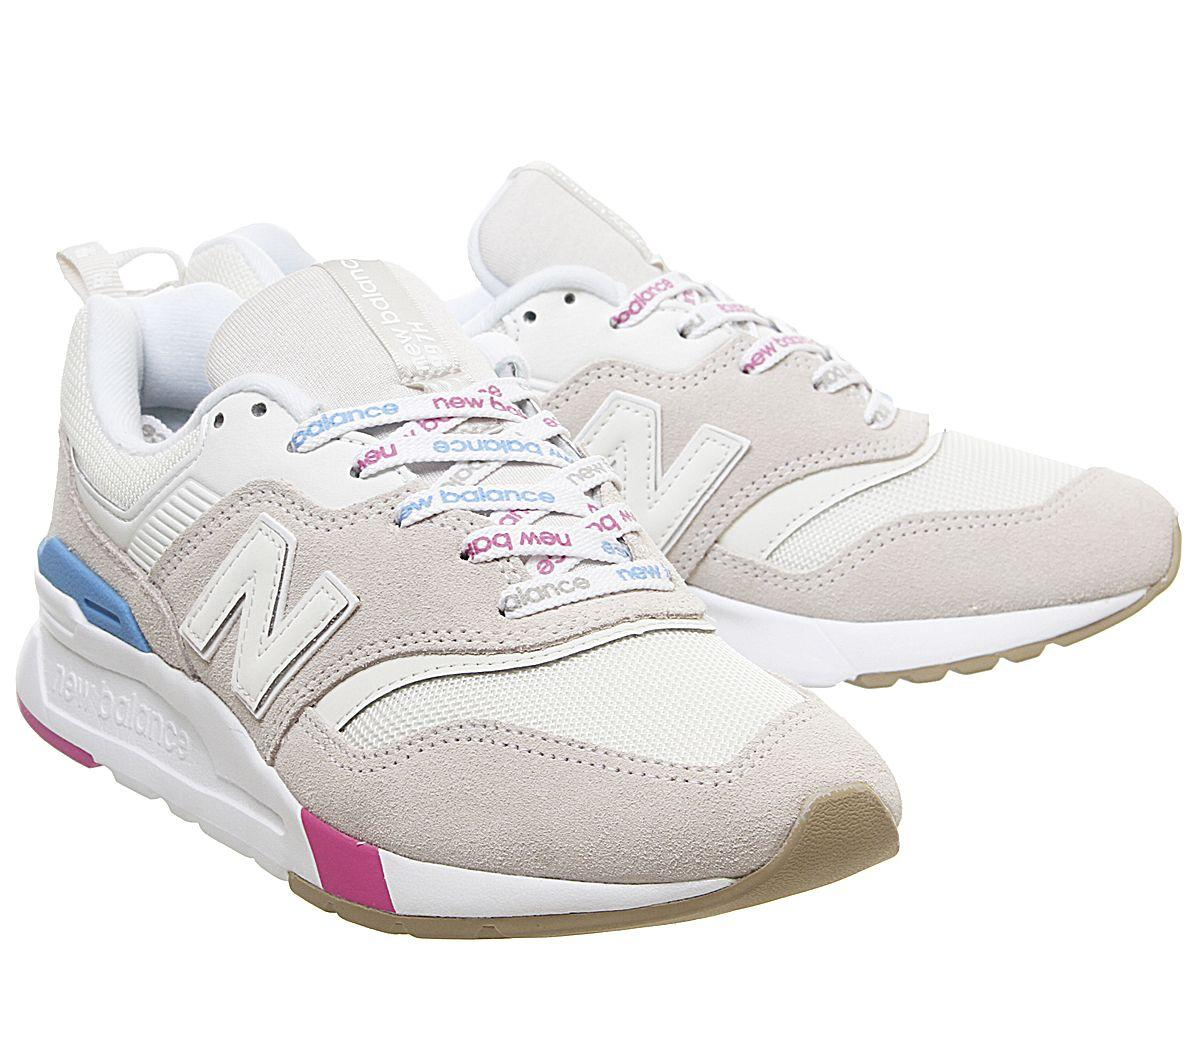 New Balance 997 Trainers for Men - Lyst